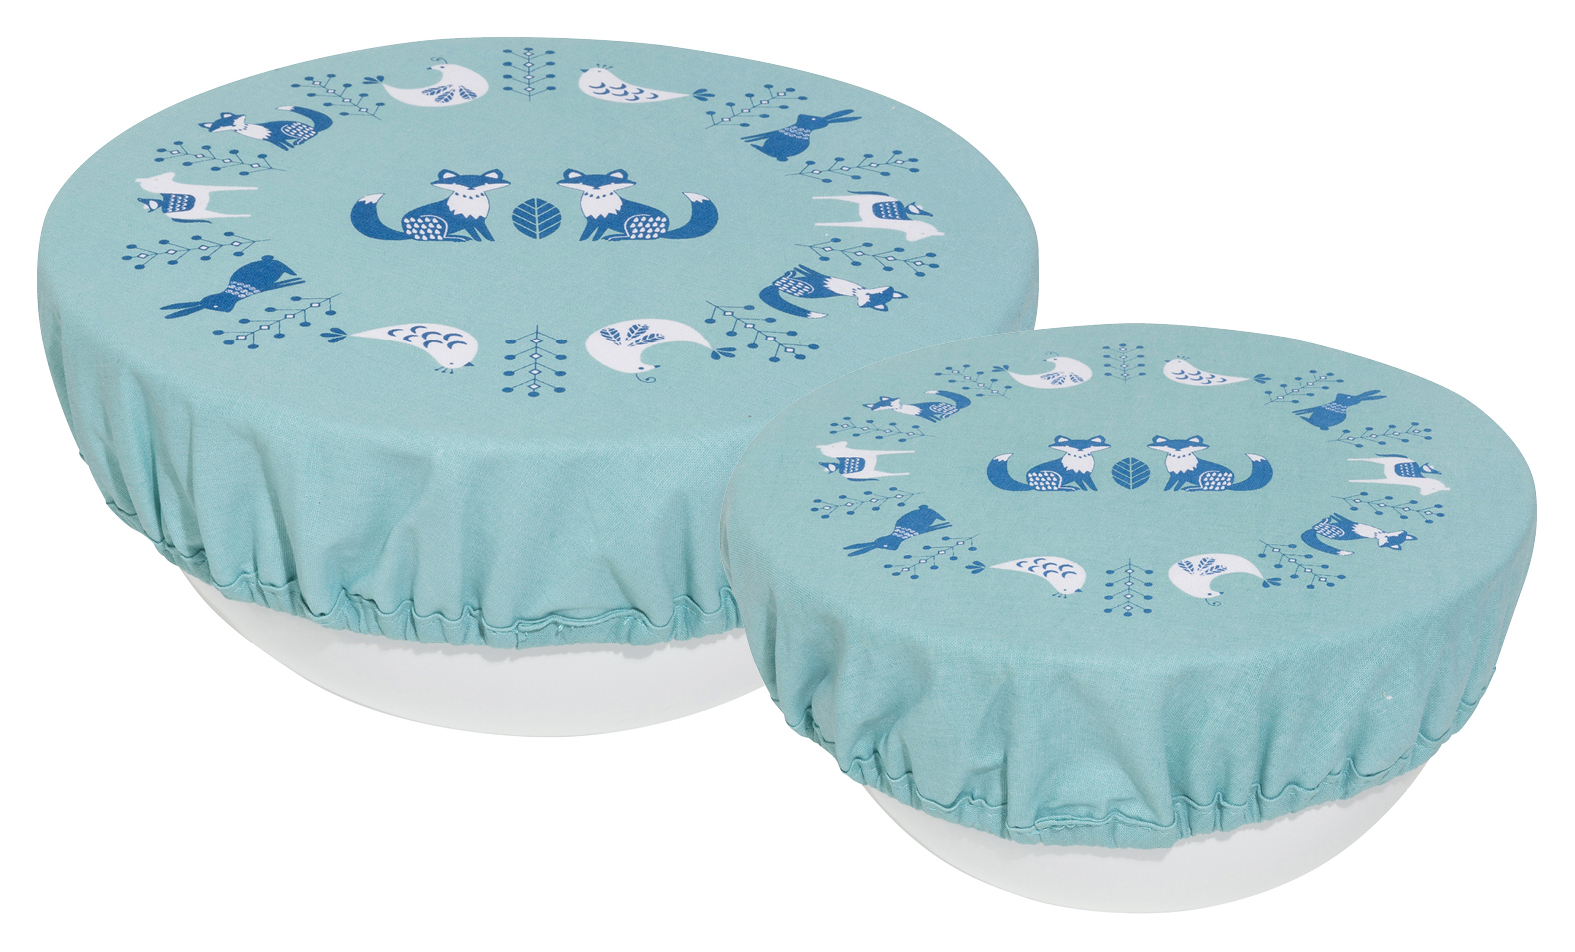 2023012 Bowl Cover Meadowland Set